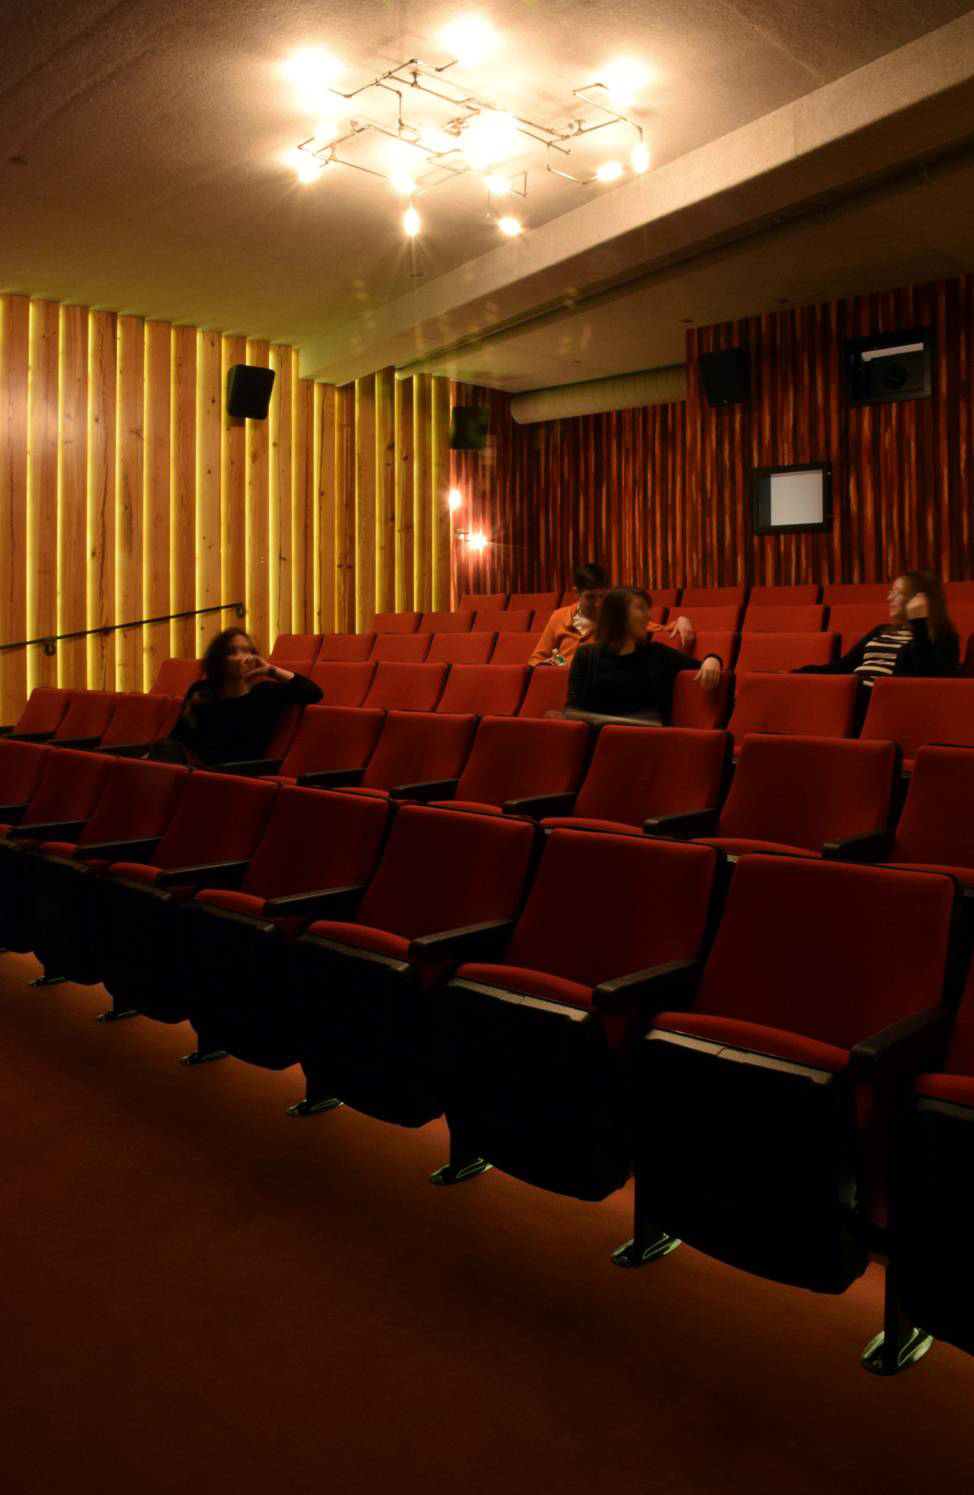 Film Theatre - Brooklyn, NY